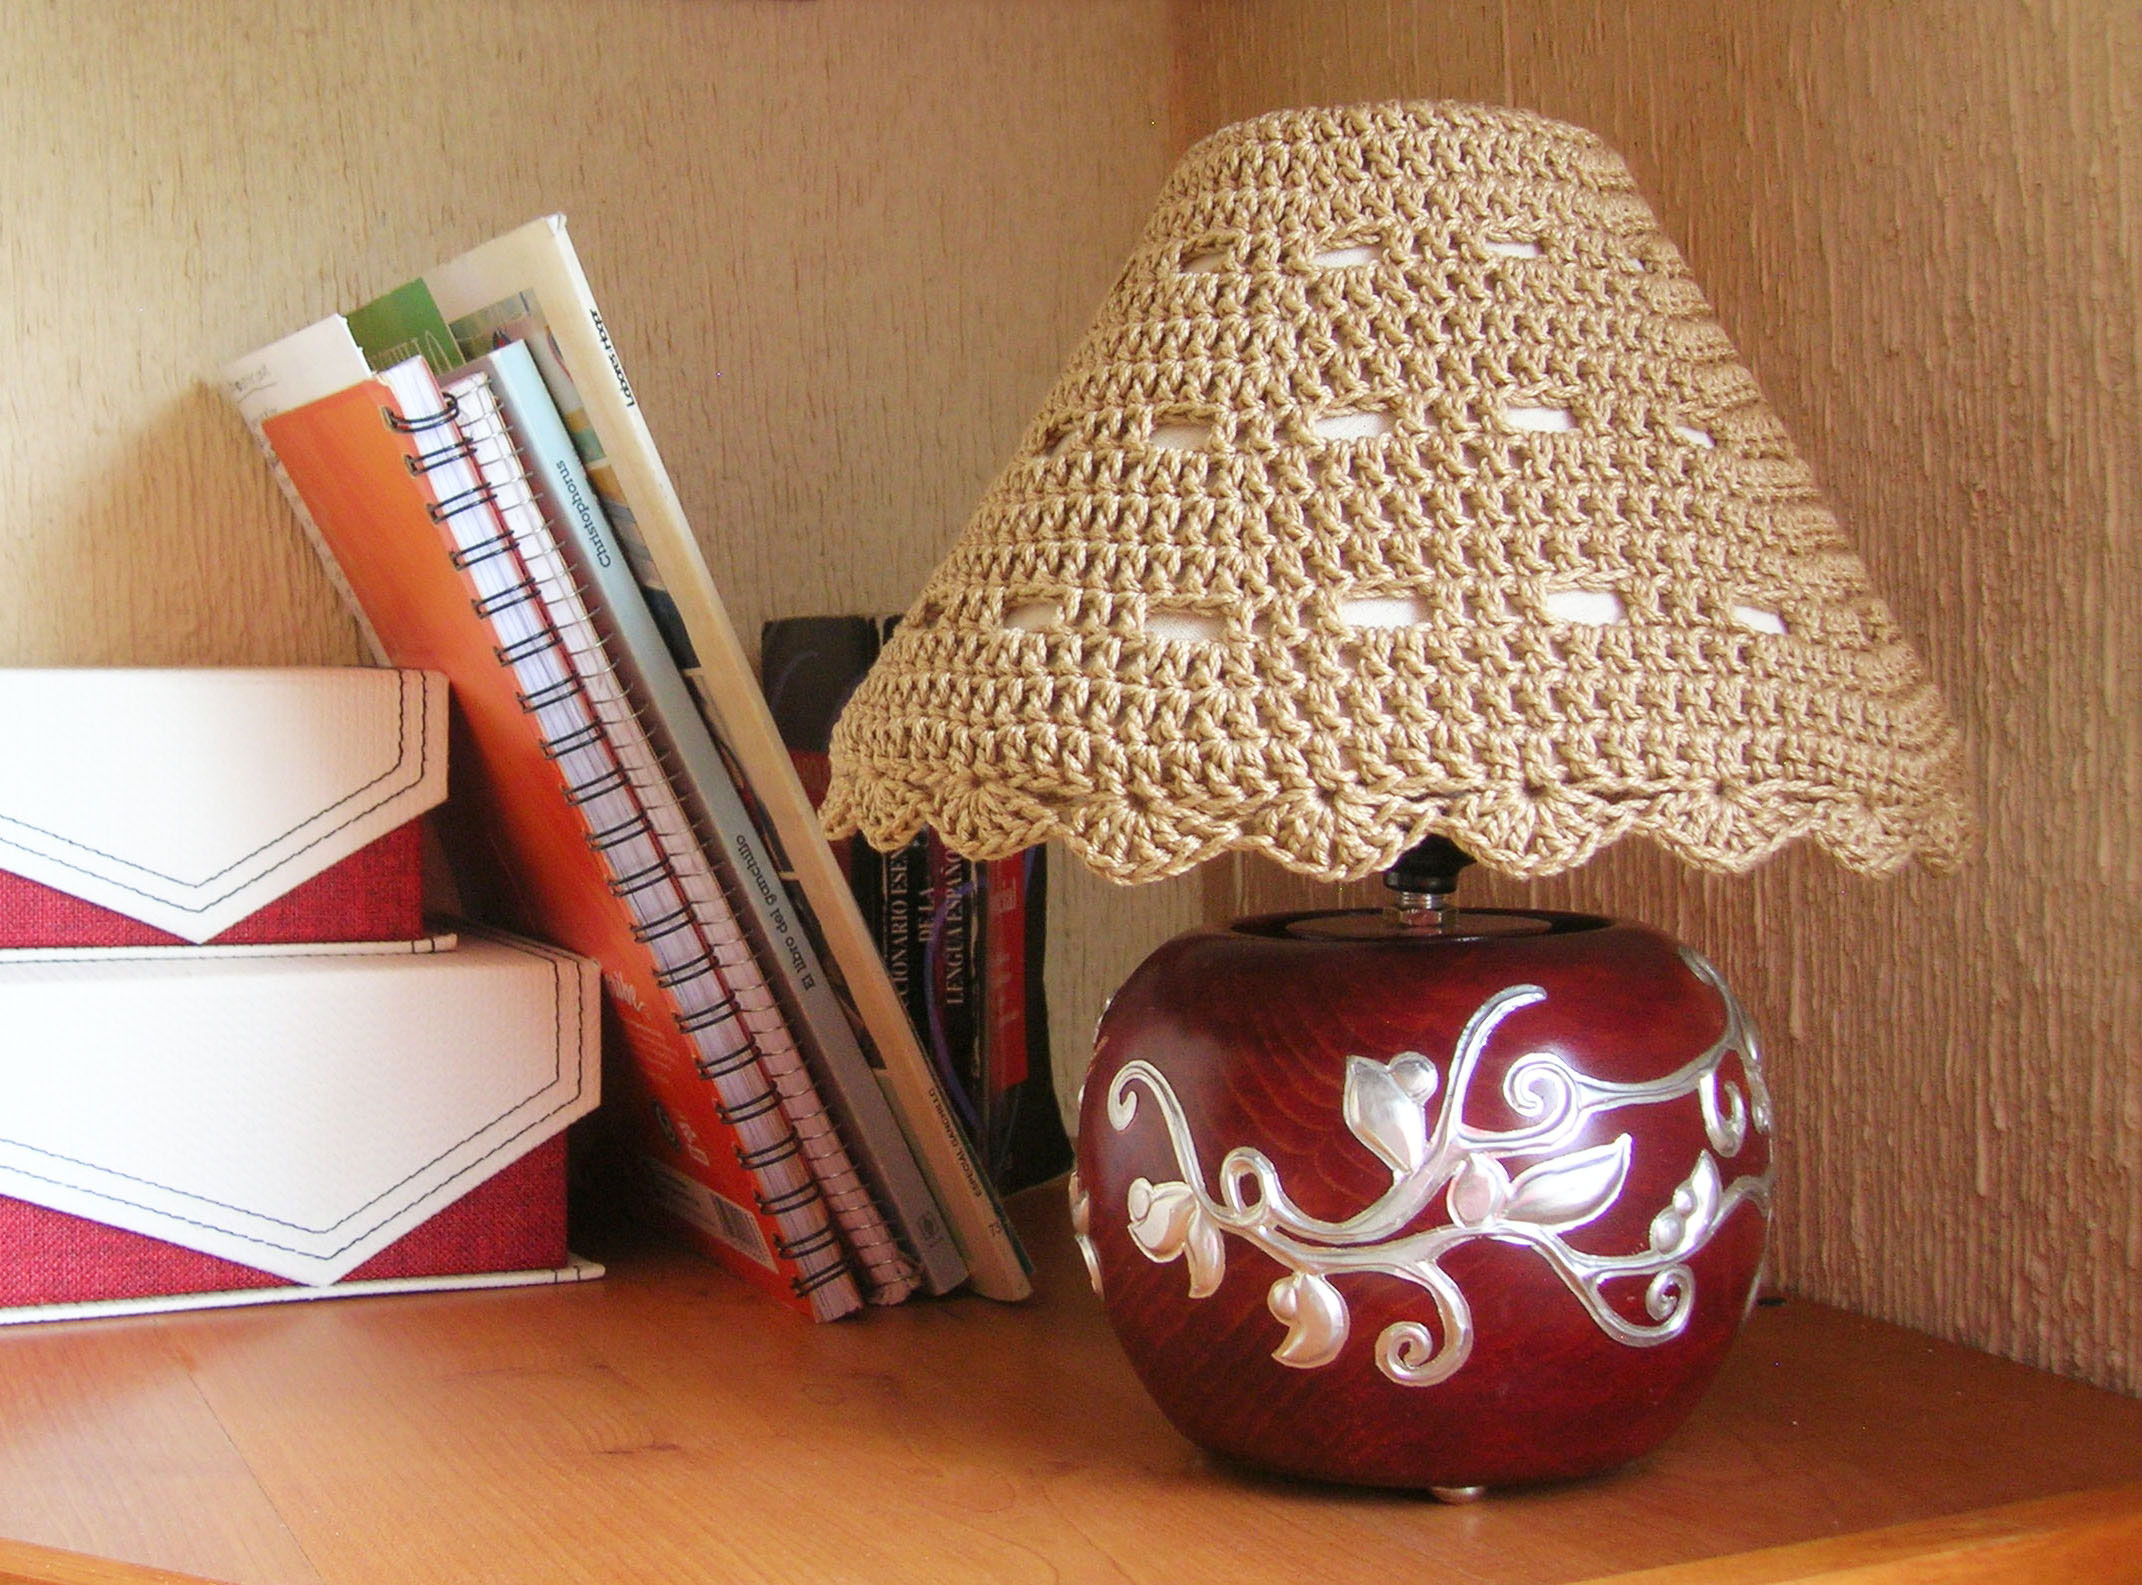 Free Pattern Crochet Lampshade : How To Crochet A Lampshade Pictures to pin on Pinterest